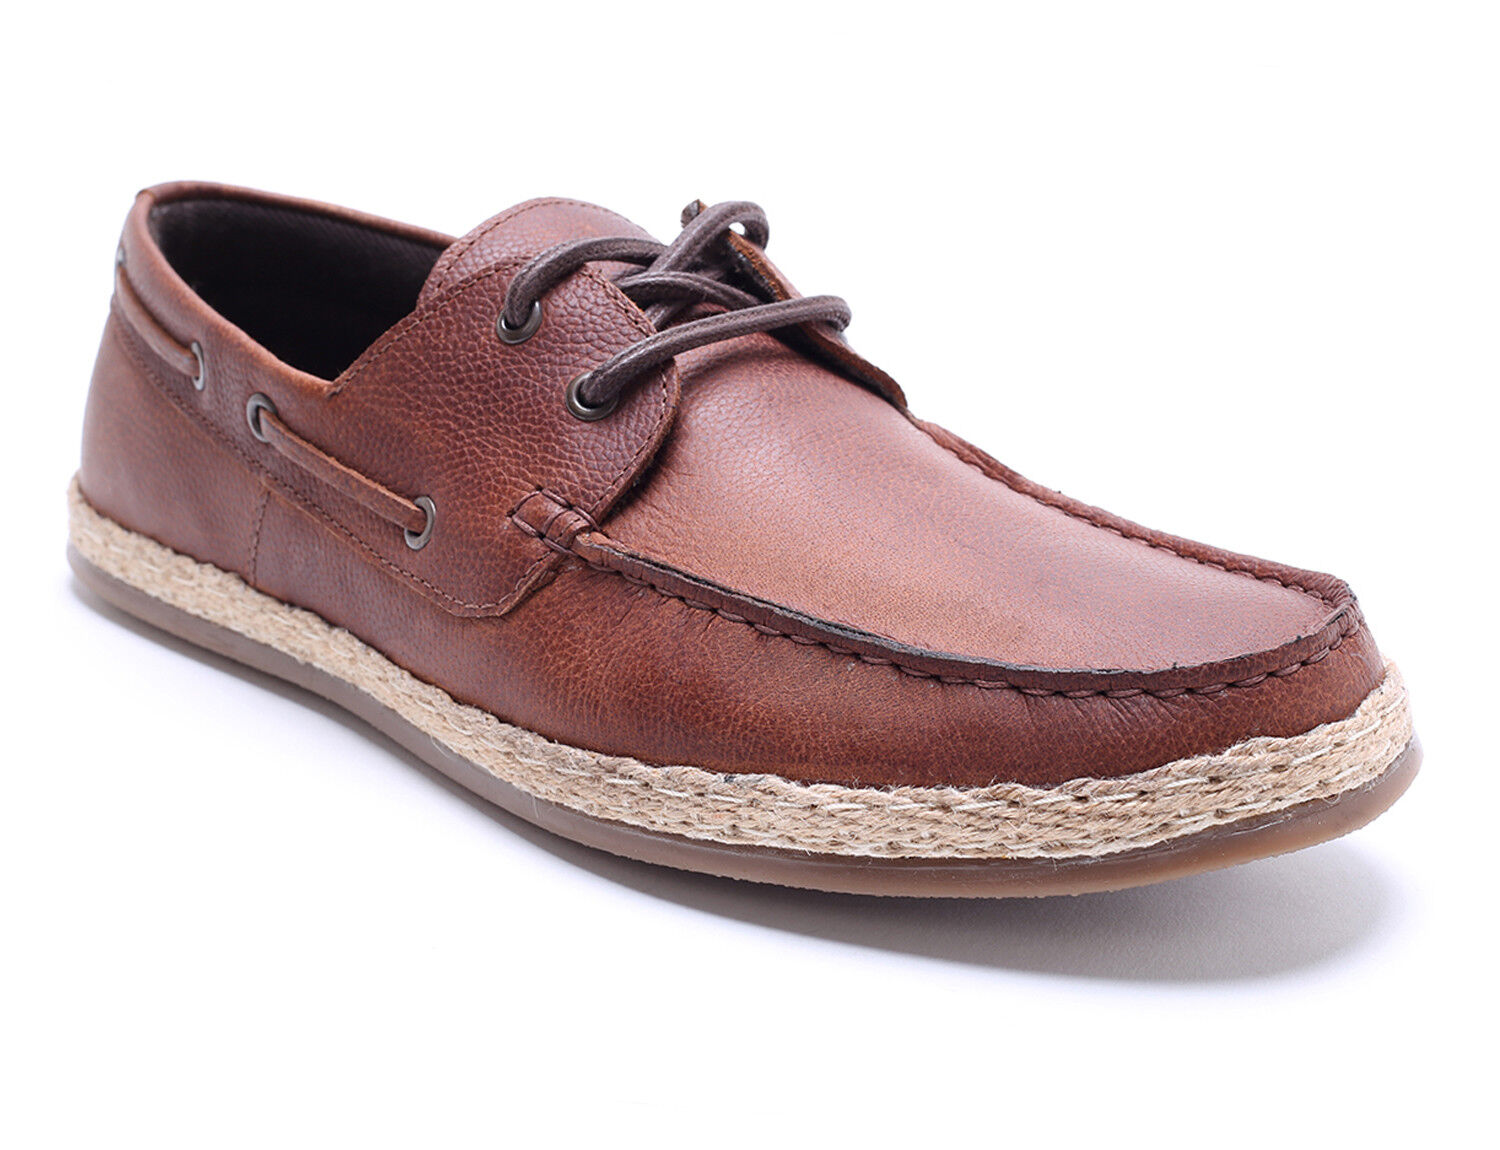 Red Tape Ruskin Tan Leather Mens Casual Boat shoes Free UK P&P